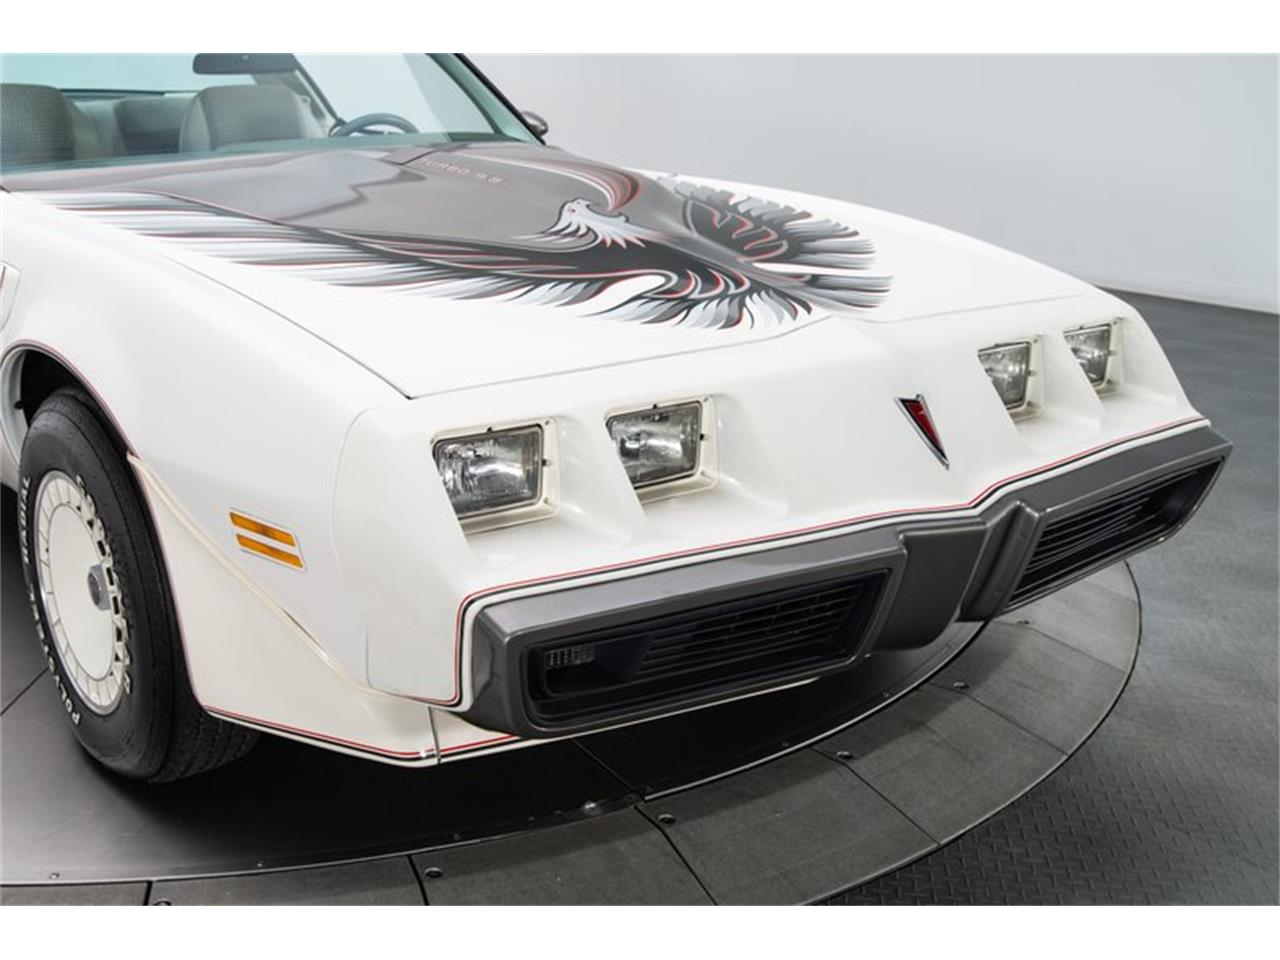 1980 Pontiac Firebird Trans Am Turbo Indy Pace Car Edition for sale in Charlotte, NC – photo 9